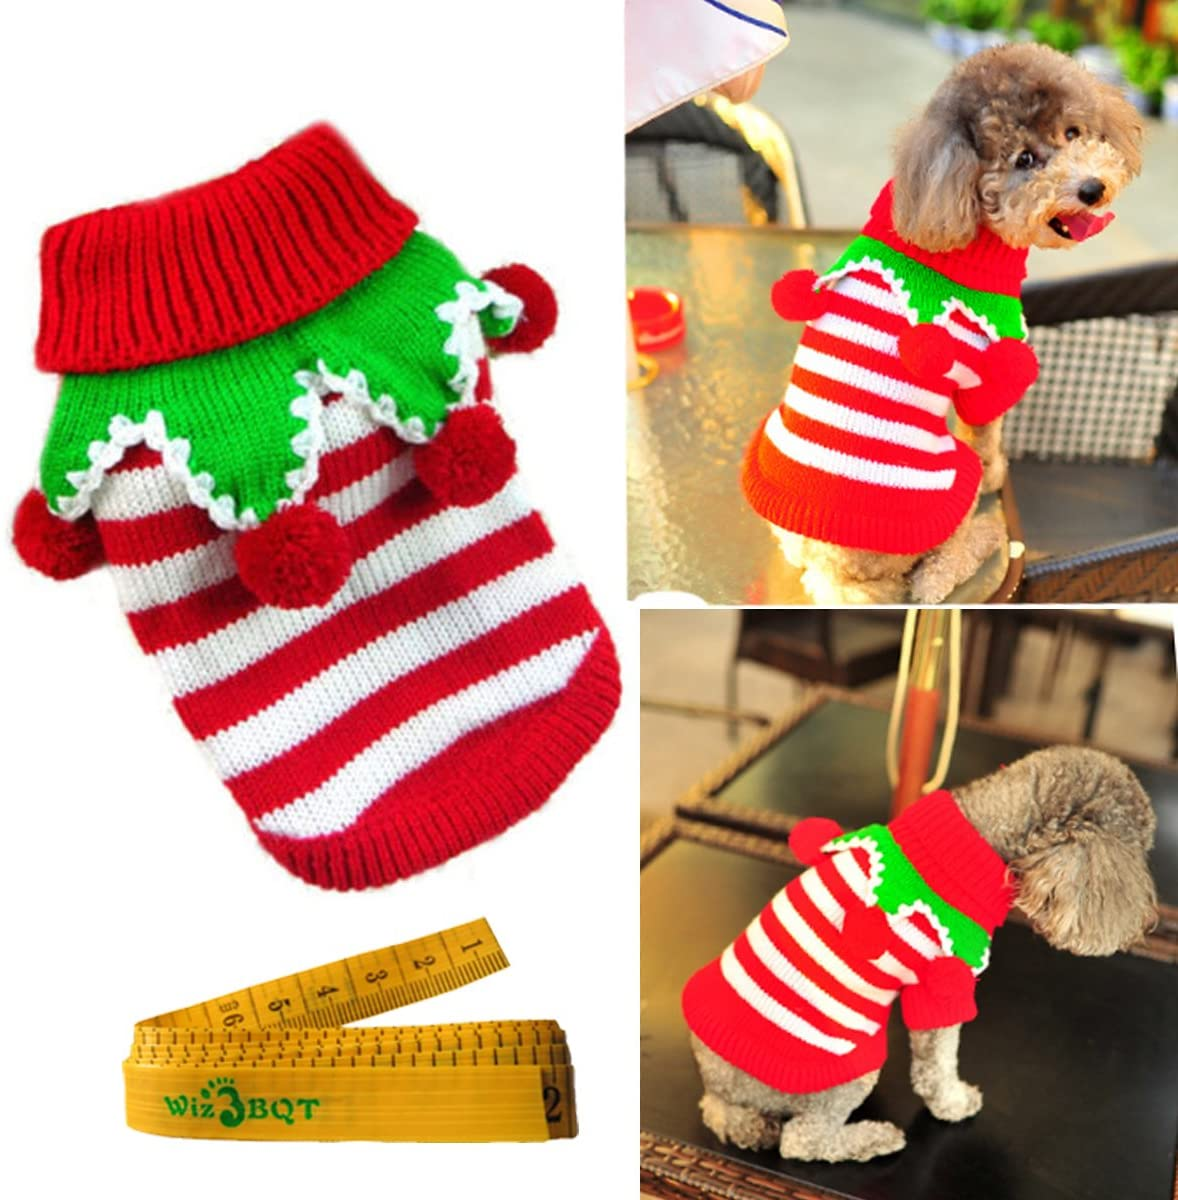 Christmas Turtleneck Knitted Pet Dog Cat Sweater Knitwear Outerwear with Collar and Balls for Dogs & Cats (Red & White Stripes, XS)